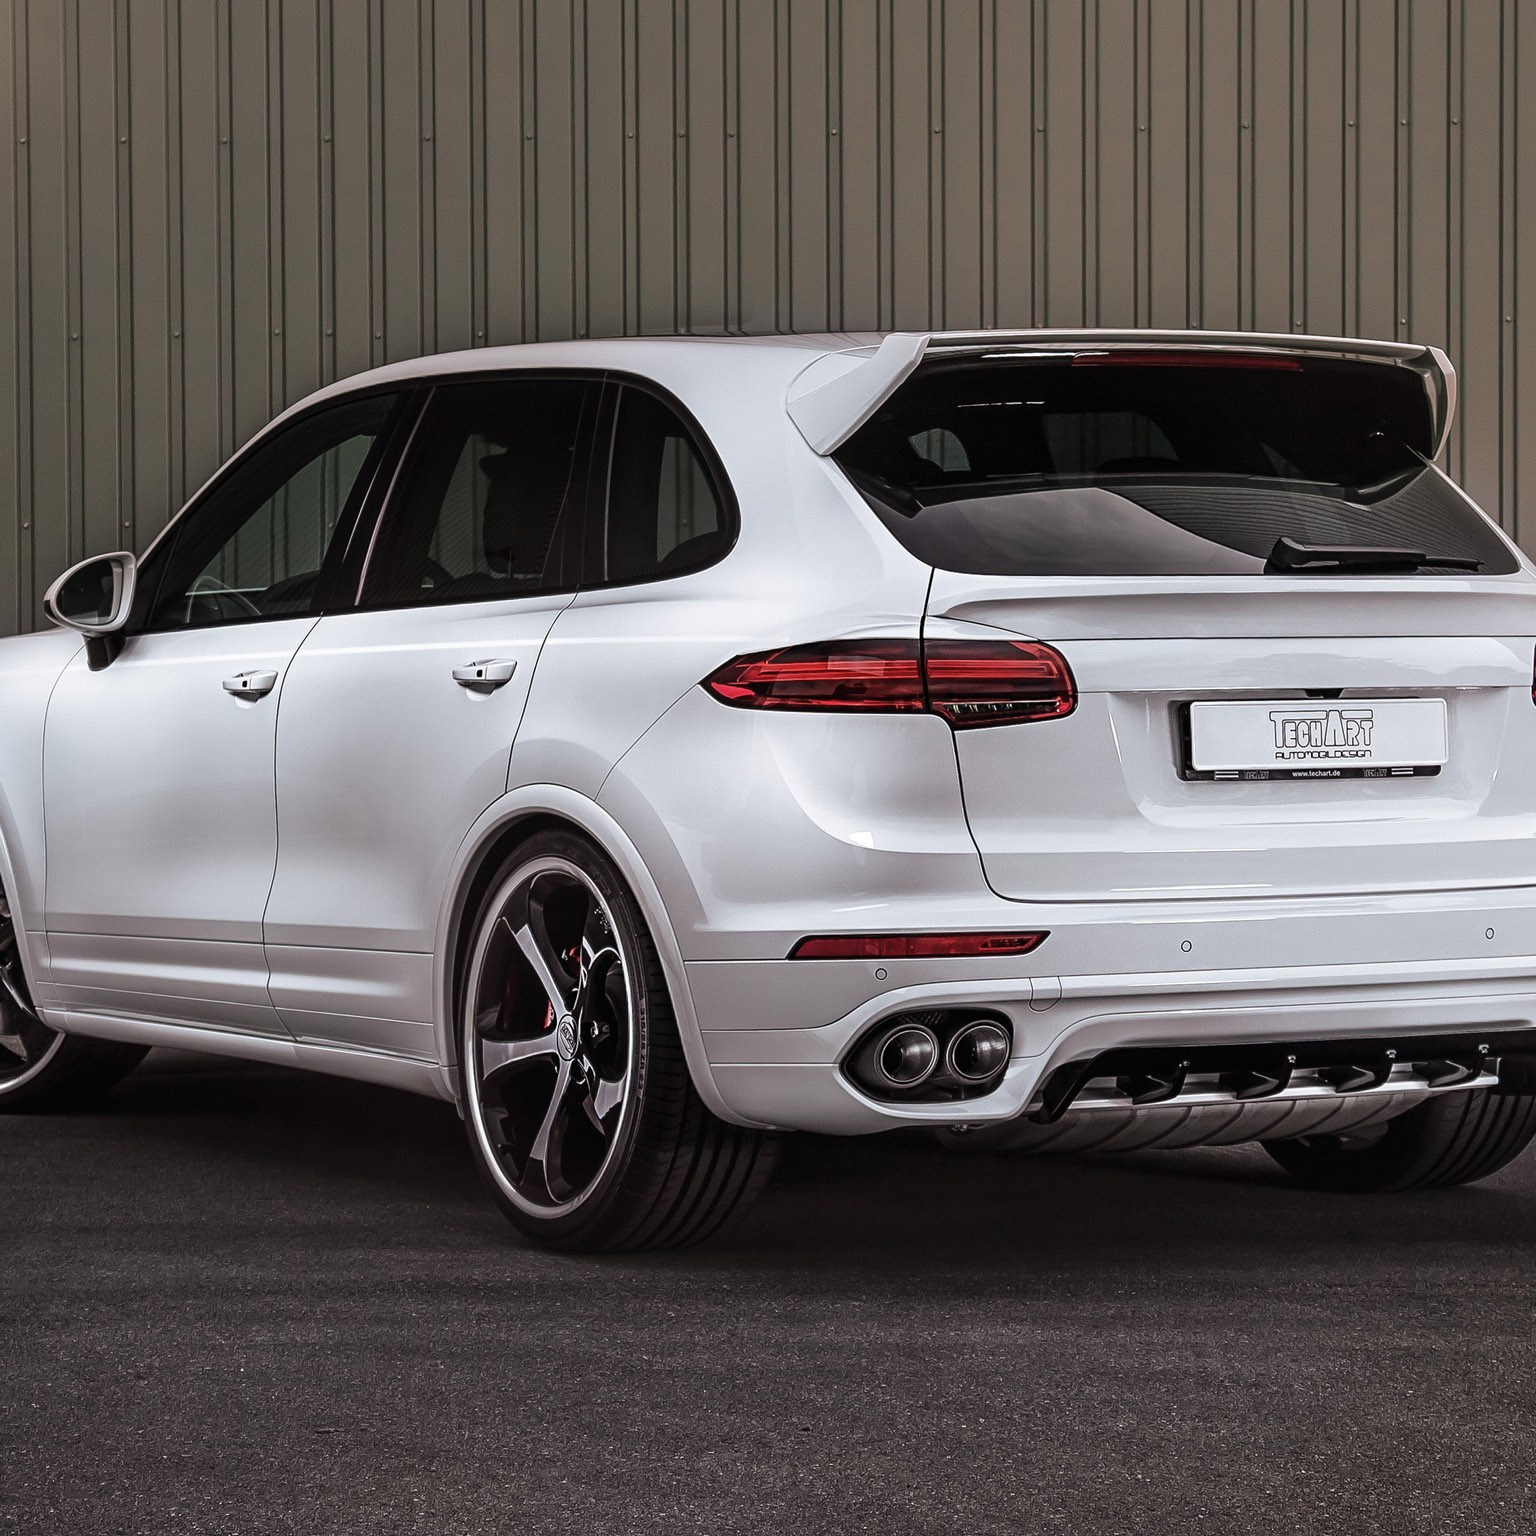 2015 Techart Porsche Cayenne 958